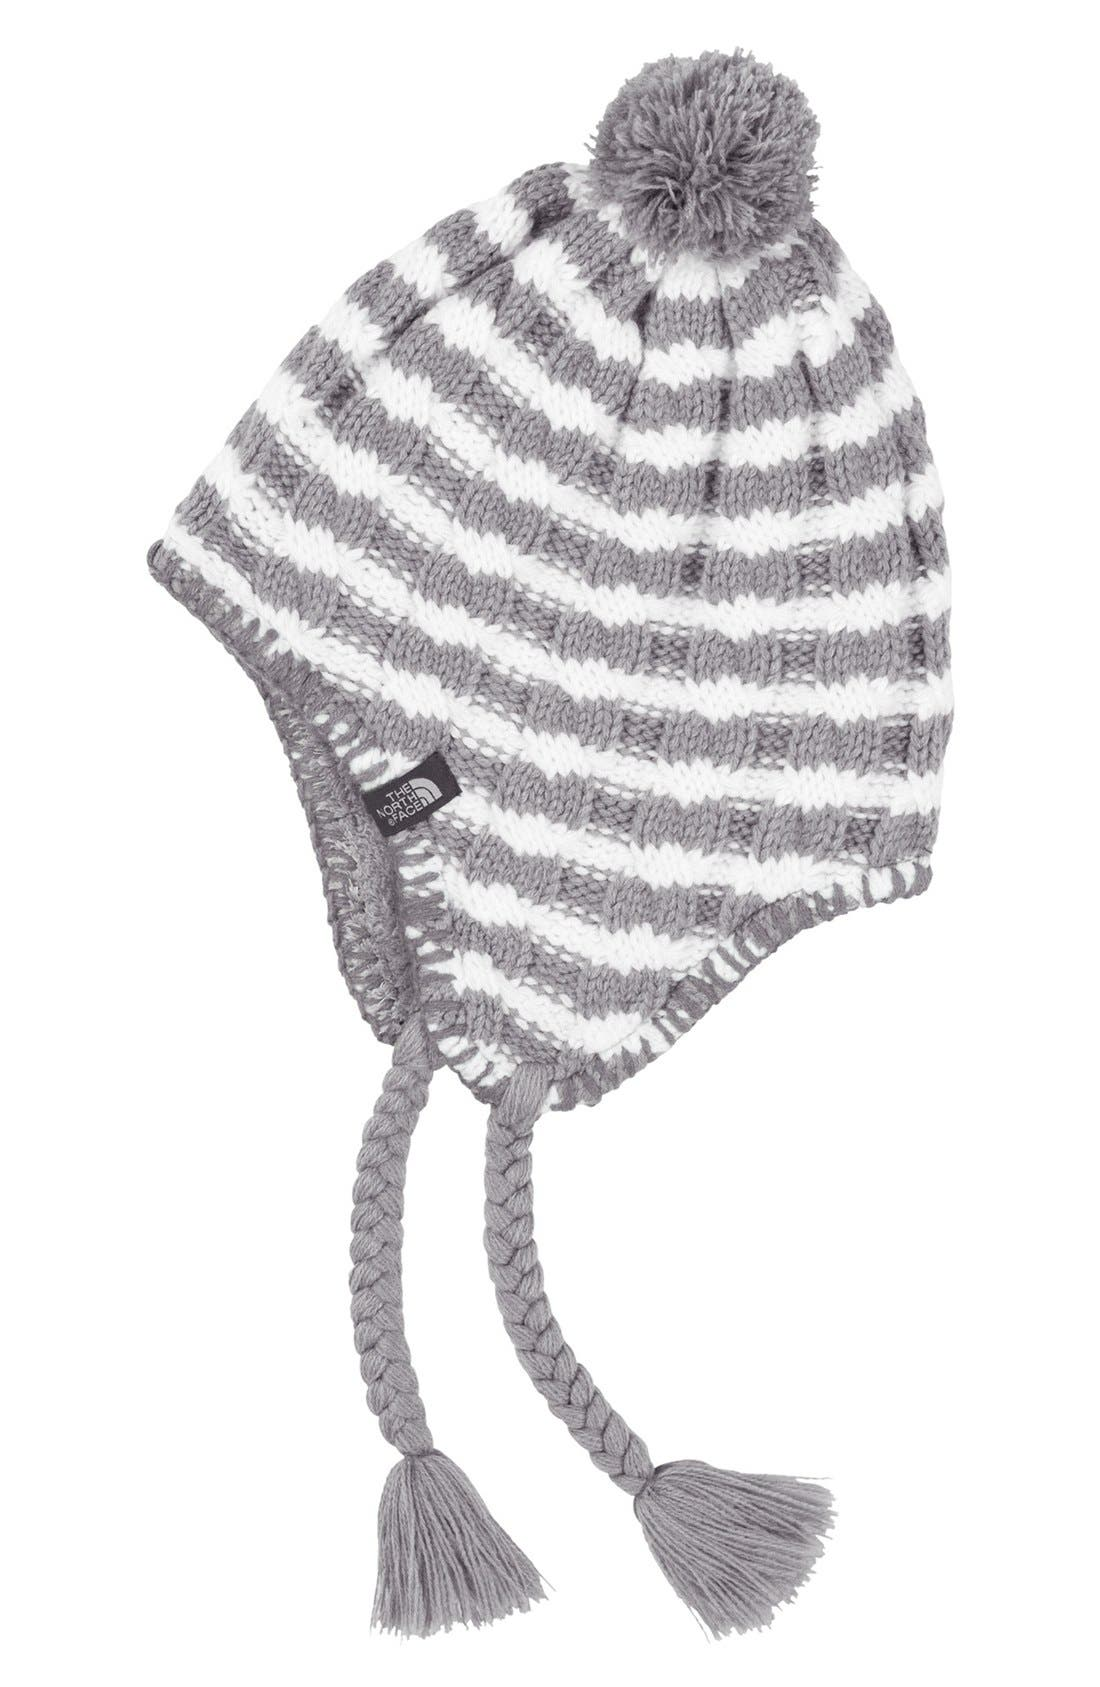 Alternate Image 1 Selected - The North Face 'Fuzzy Earflap' Beanie (Girls)